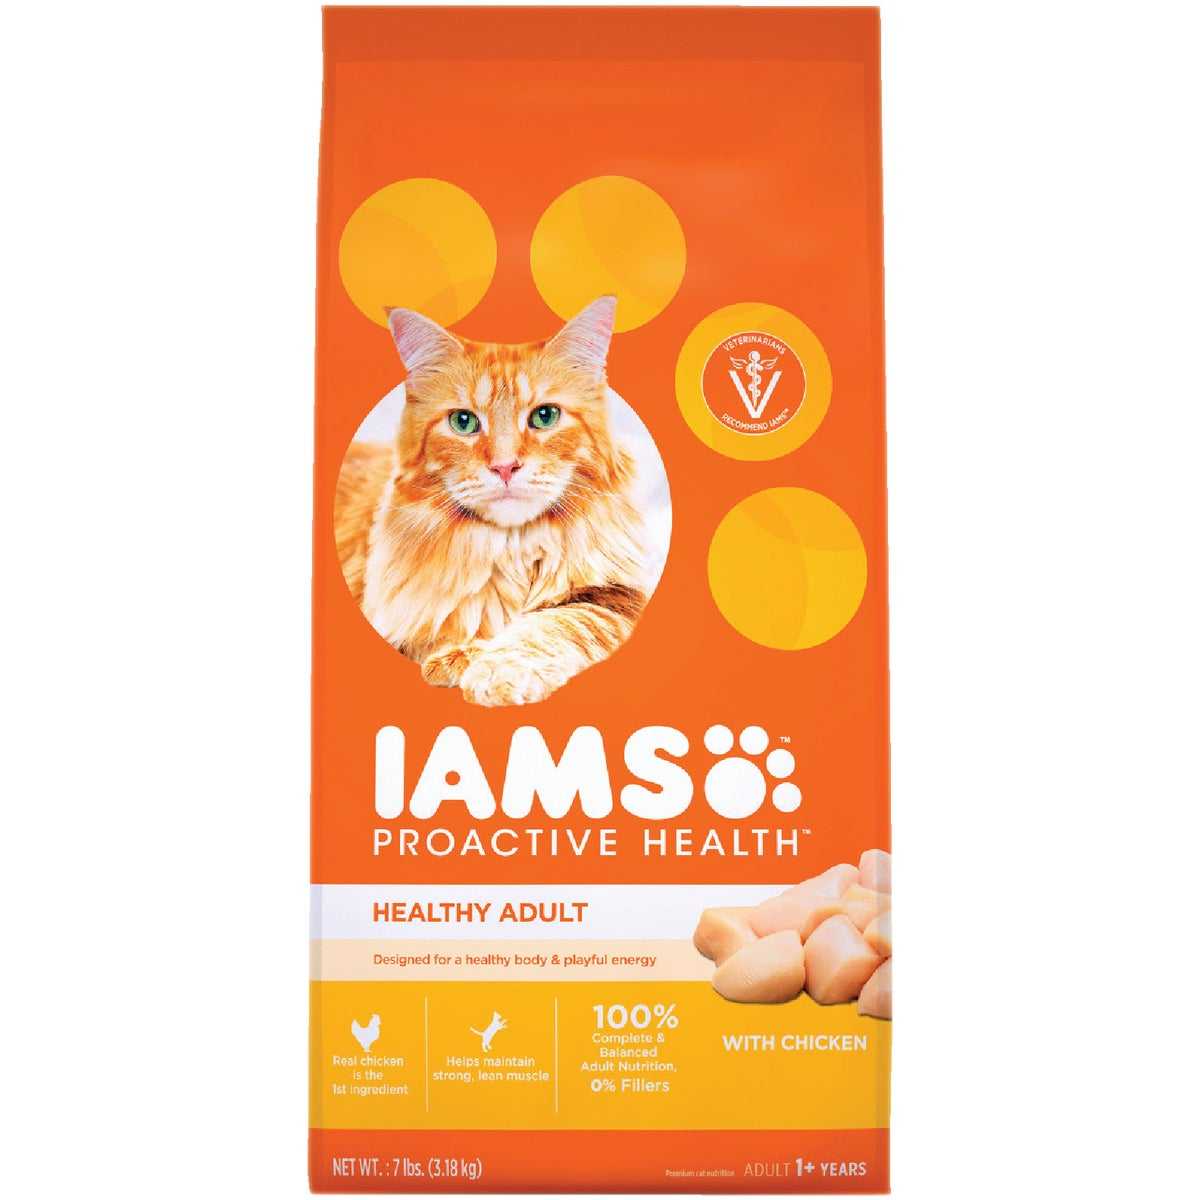 5.7LB ORGL CHKN CAT FOOD - 12499 by Wolverton Iams